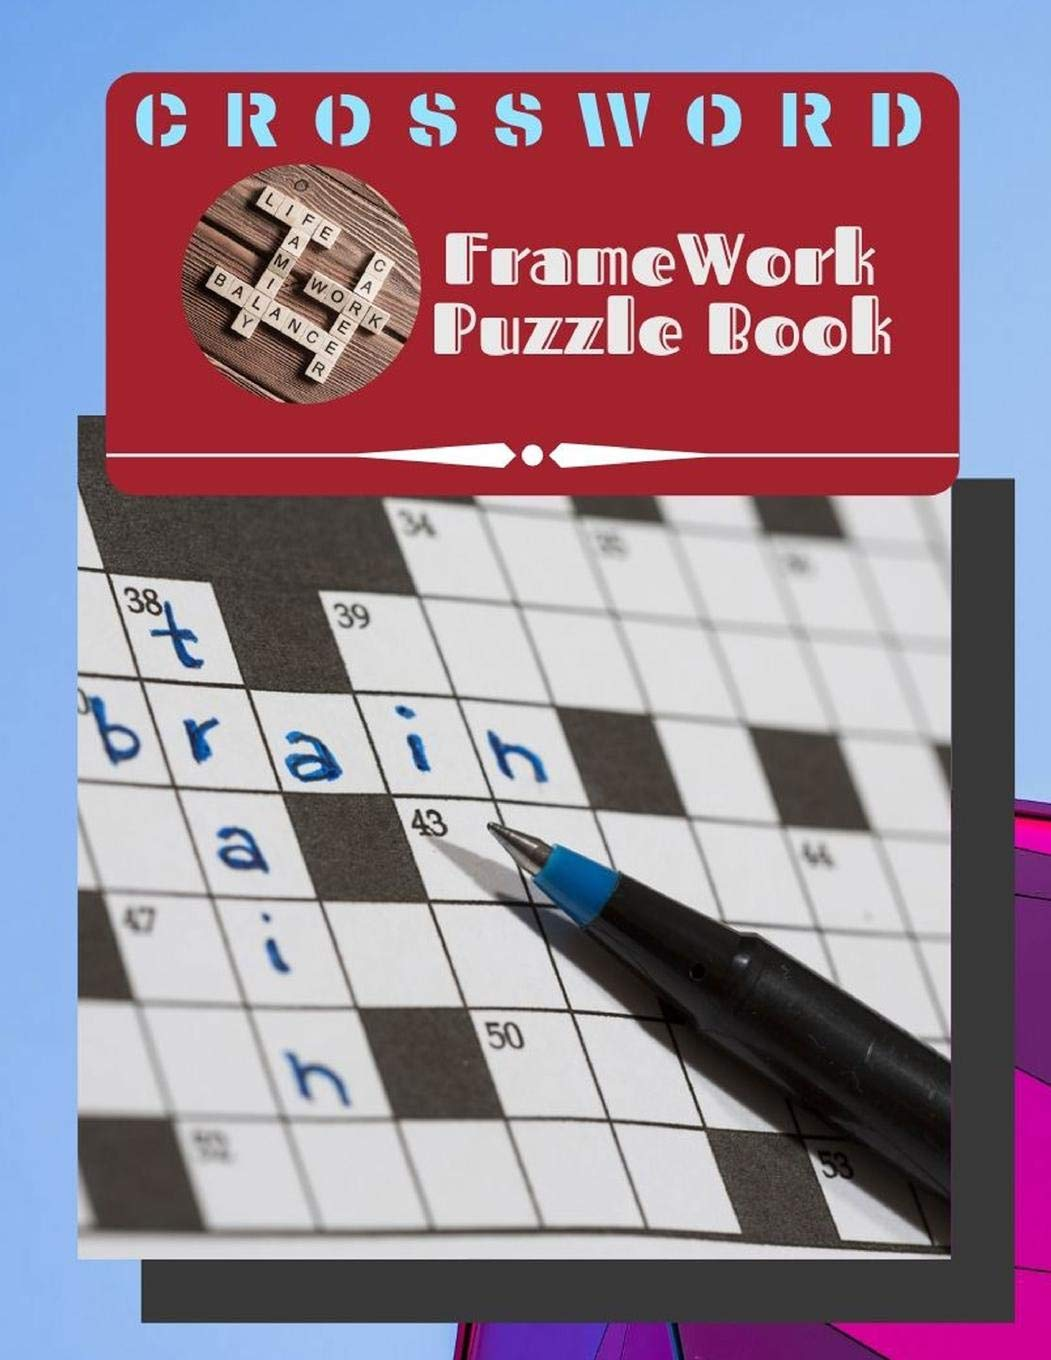 Word clues for crossword puzzles